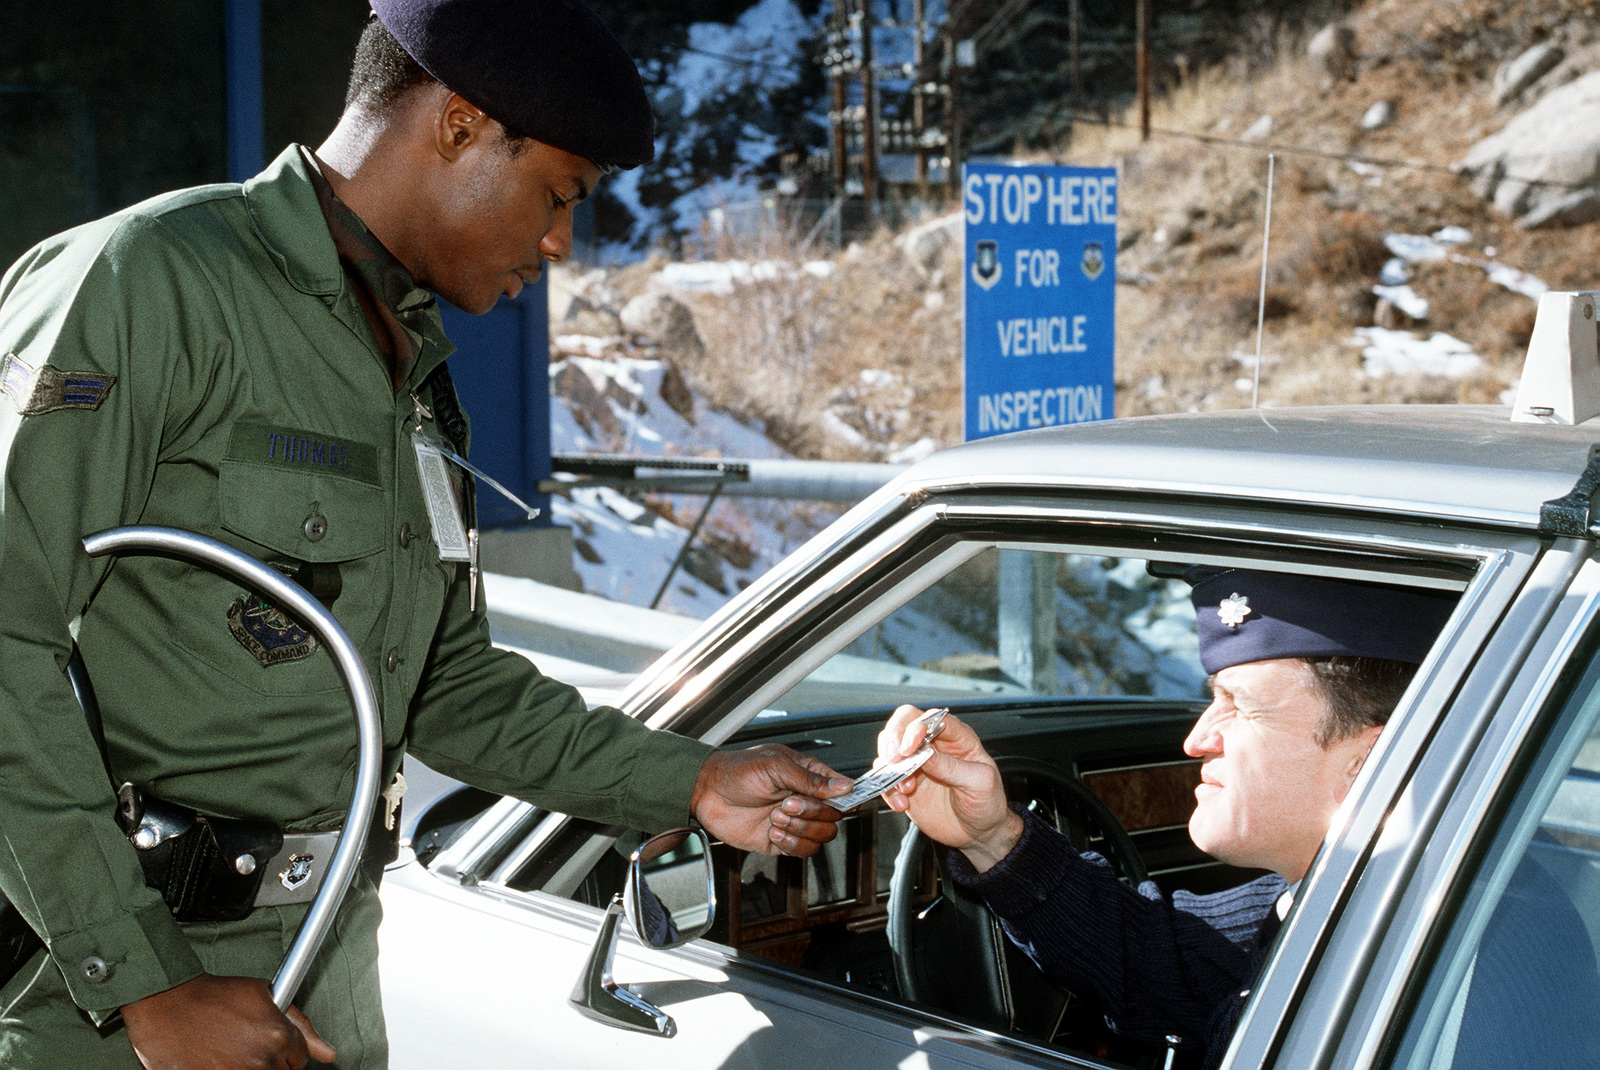 Security police law enforcement specialist checks the identification of an Air Force LTC arriving in his automobile at the NORAD Cheyenne Mountain Complex near Colorado Springs, Colorado. Exact Date Shot Unknown